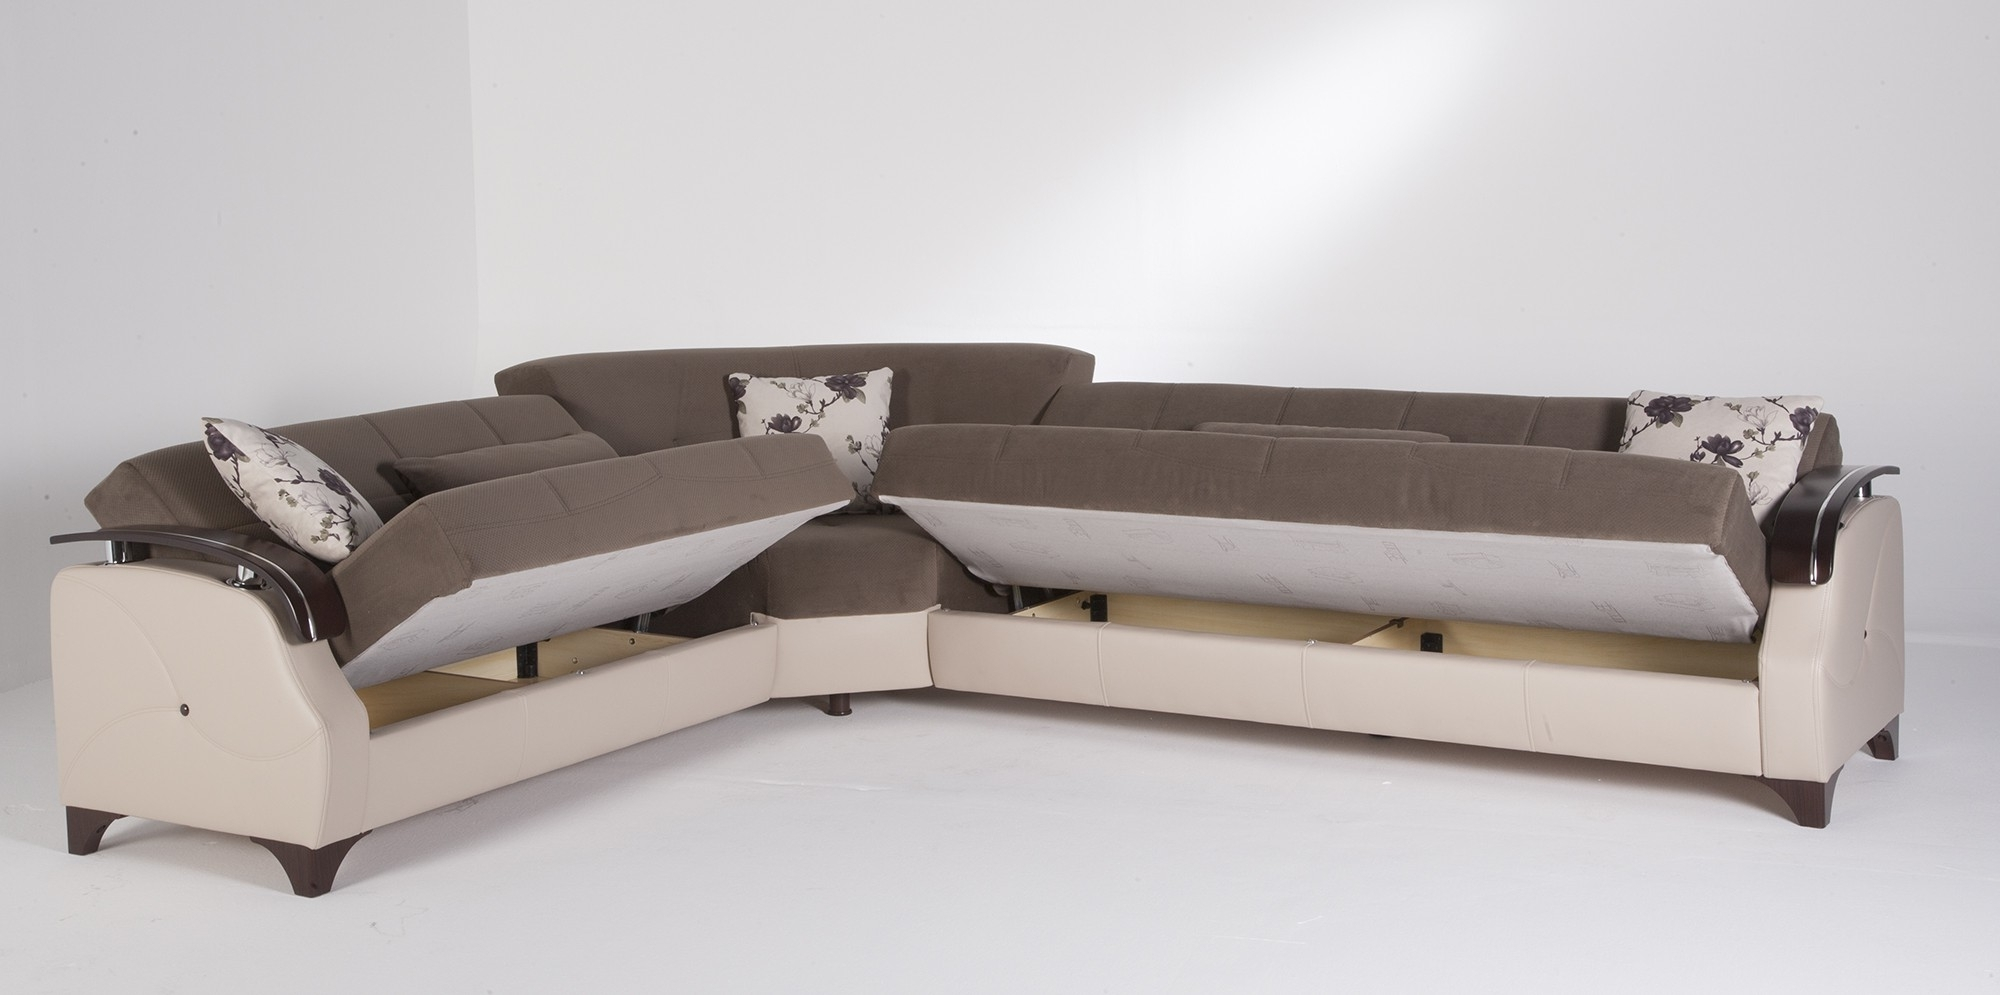 Best And Newest Sectional Sofa Design: Cheap Sectional Sofas Furniture Design Regarding L Shaped Sectional Sleeper Sofas (View 4 of 15)